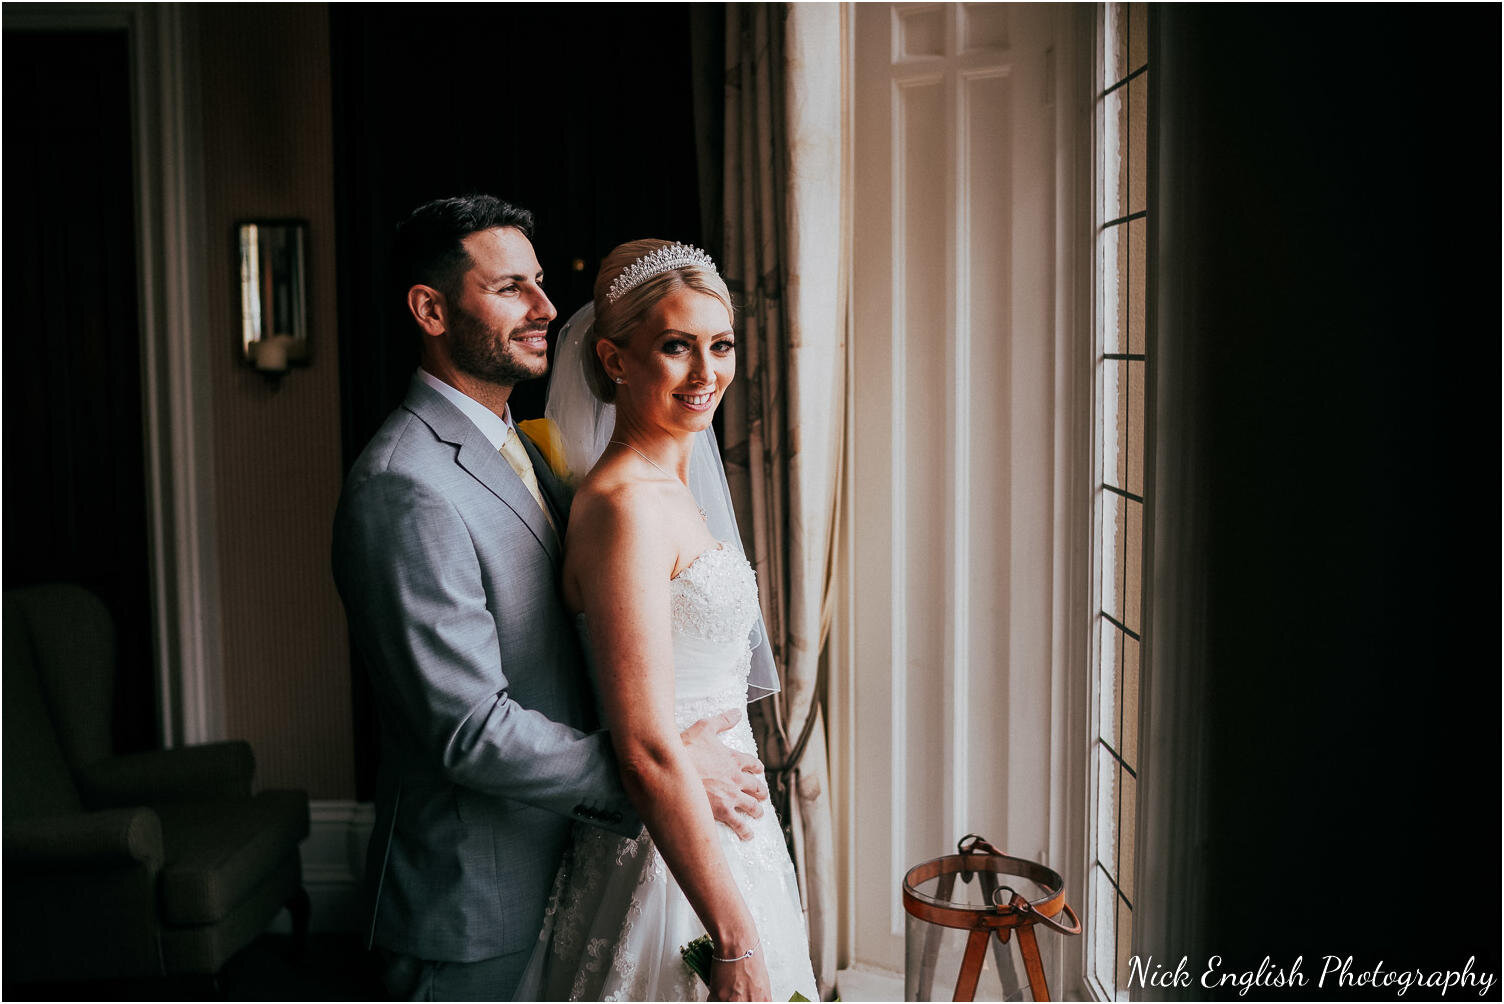 Falcon_Manor_Yorkshire_Wedding_Photographer-64.jpg